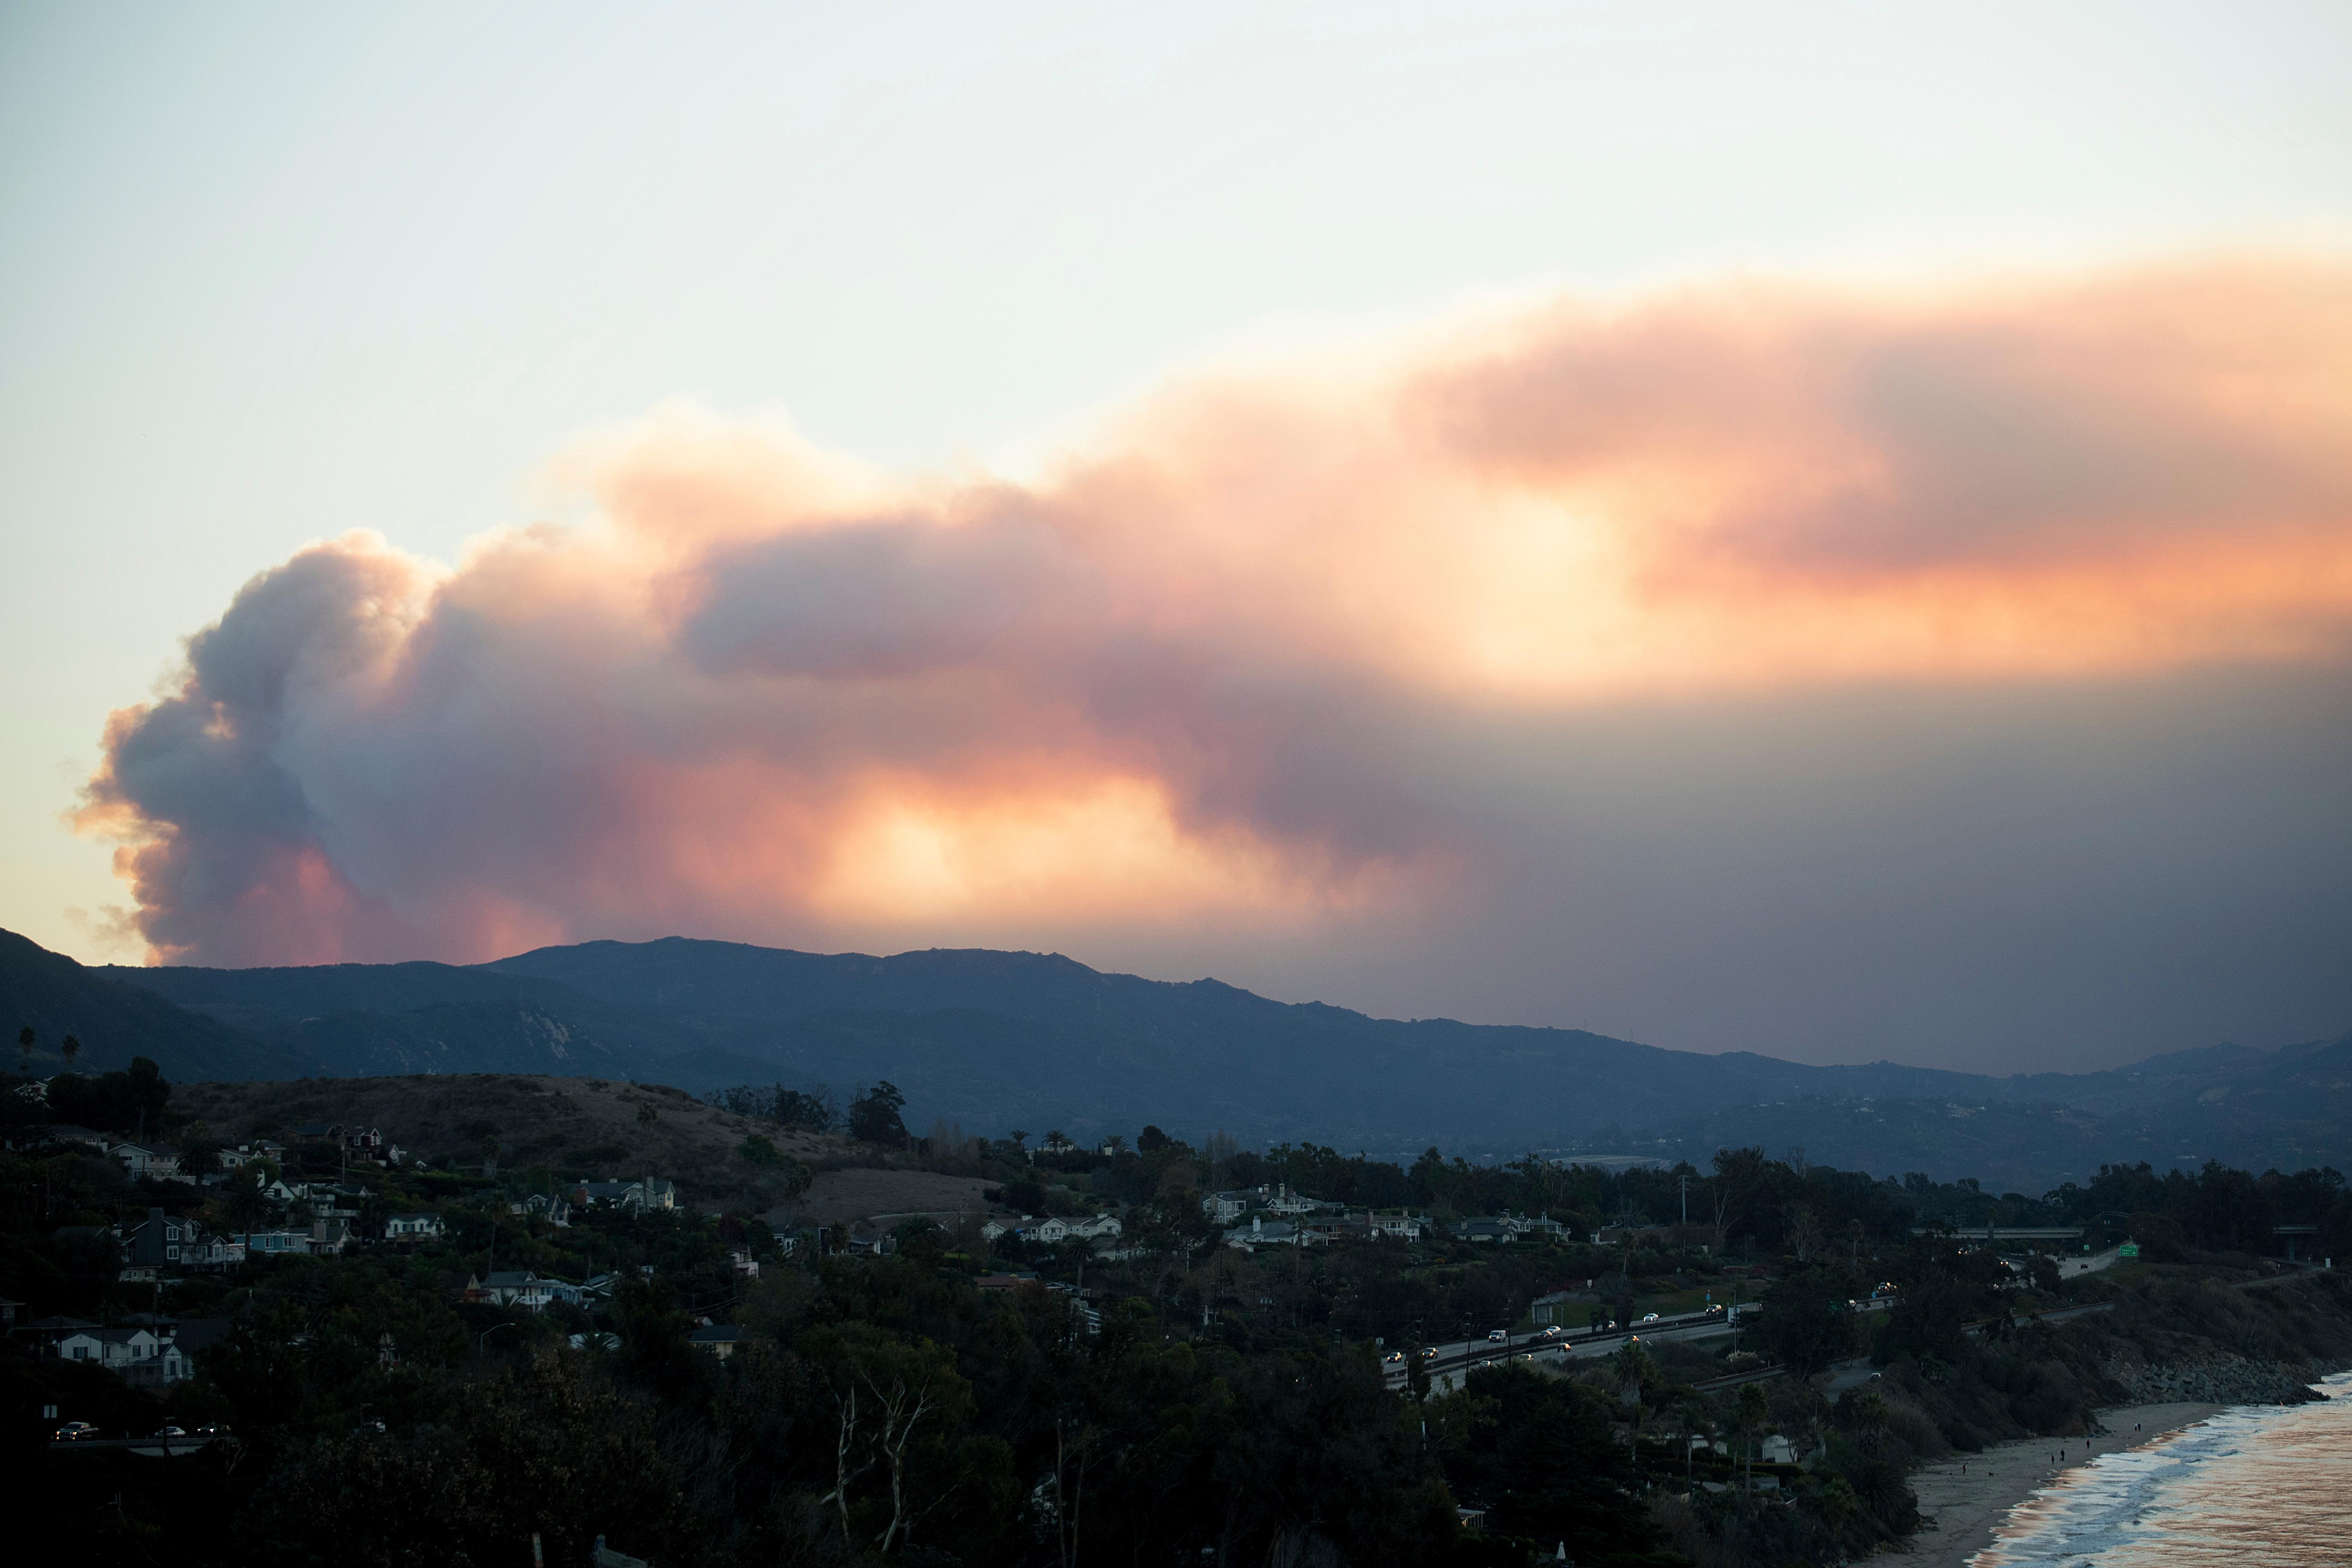 Seen from Carpinteria, Calif., smoke from a wildfire billows over Ventura, on Tuesday, Dec. 5, 2017. (AP Photo/Noah Berger)